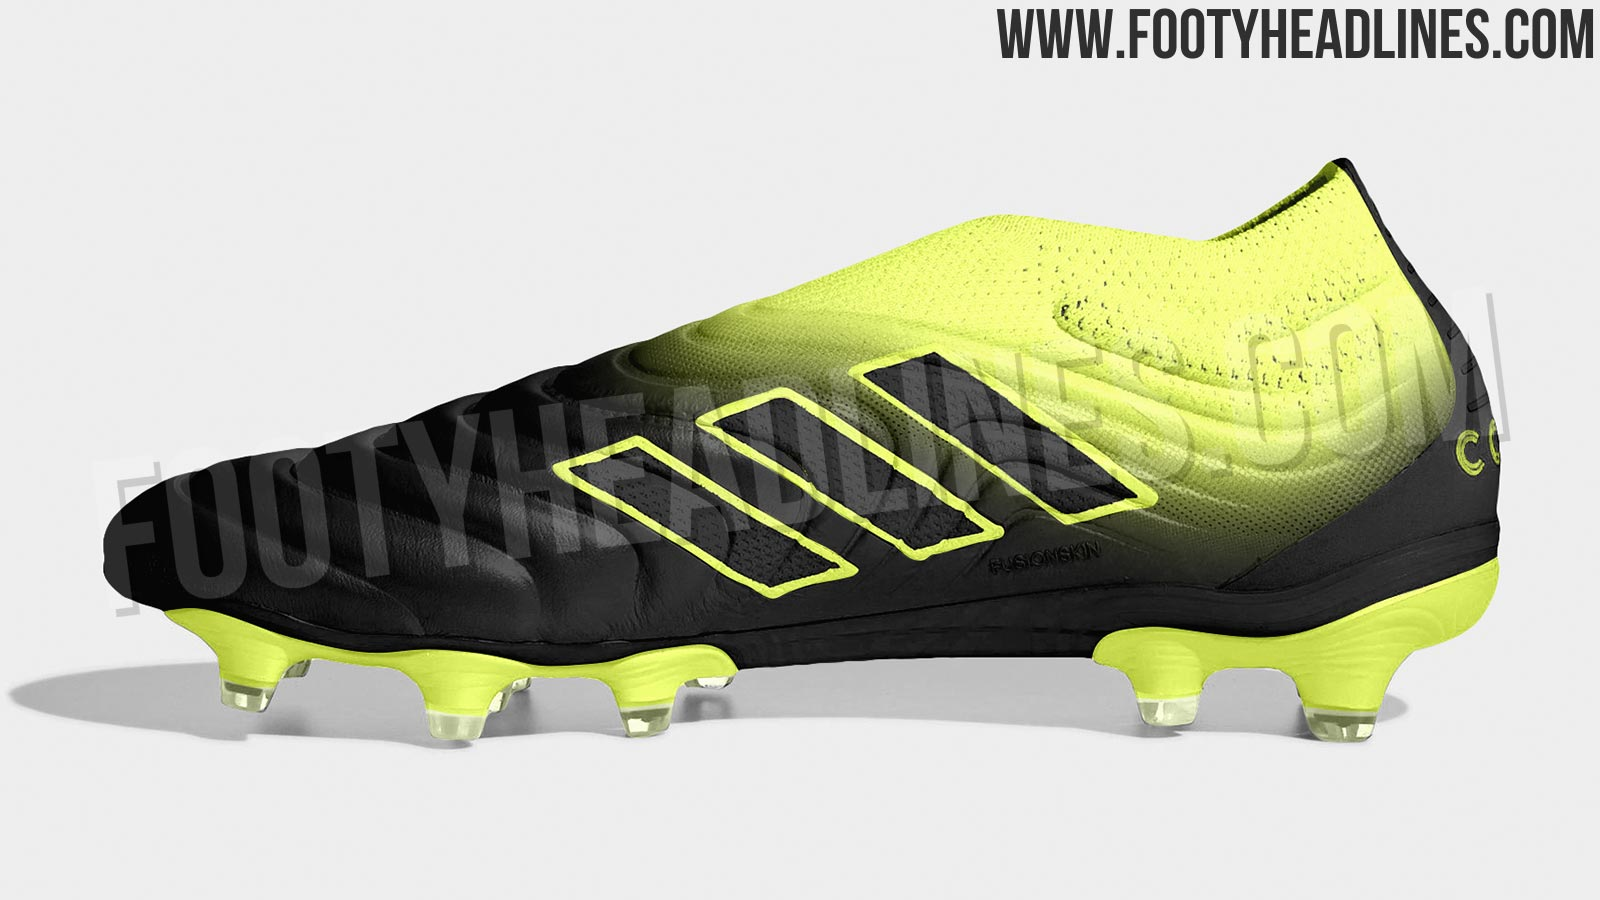 watch 87abf f116f Adidas will bring out a black and yellow Adidas Copa 19 soccer shoe in late  January  early February as part of the so-called Exhibit Pack.